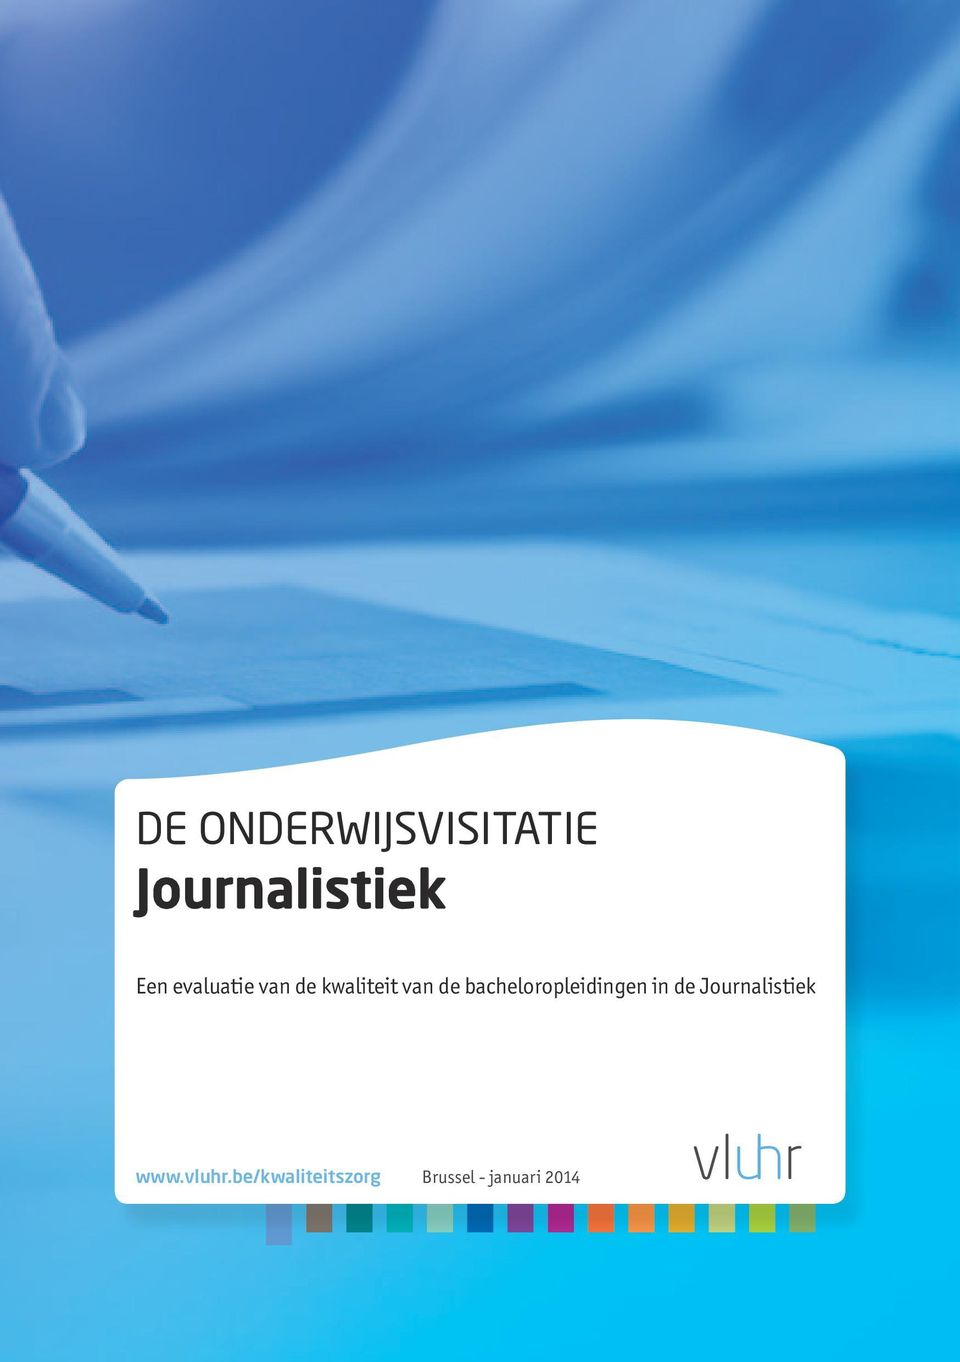 bacheloropleidingen in de Journalistiek